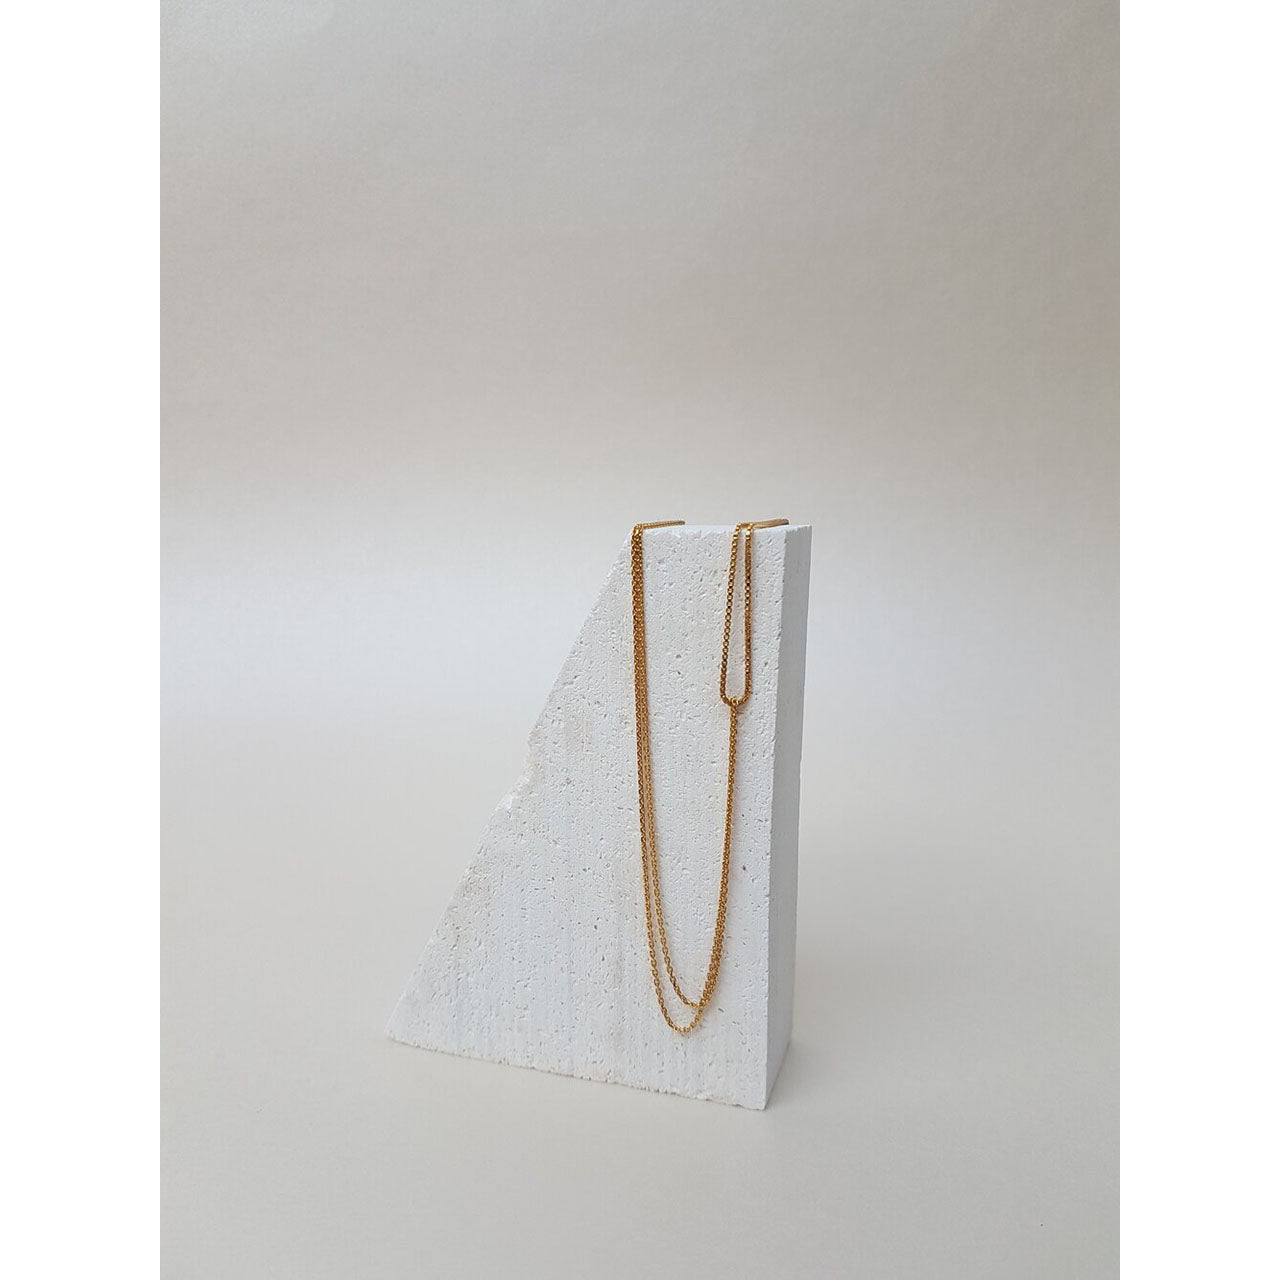 two looped chain necklace